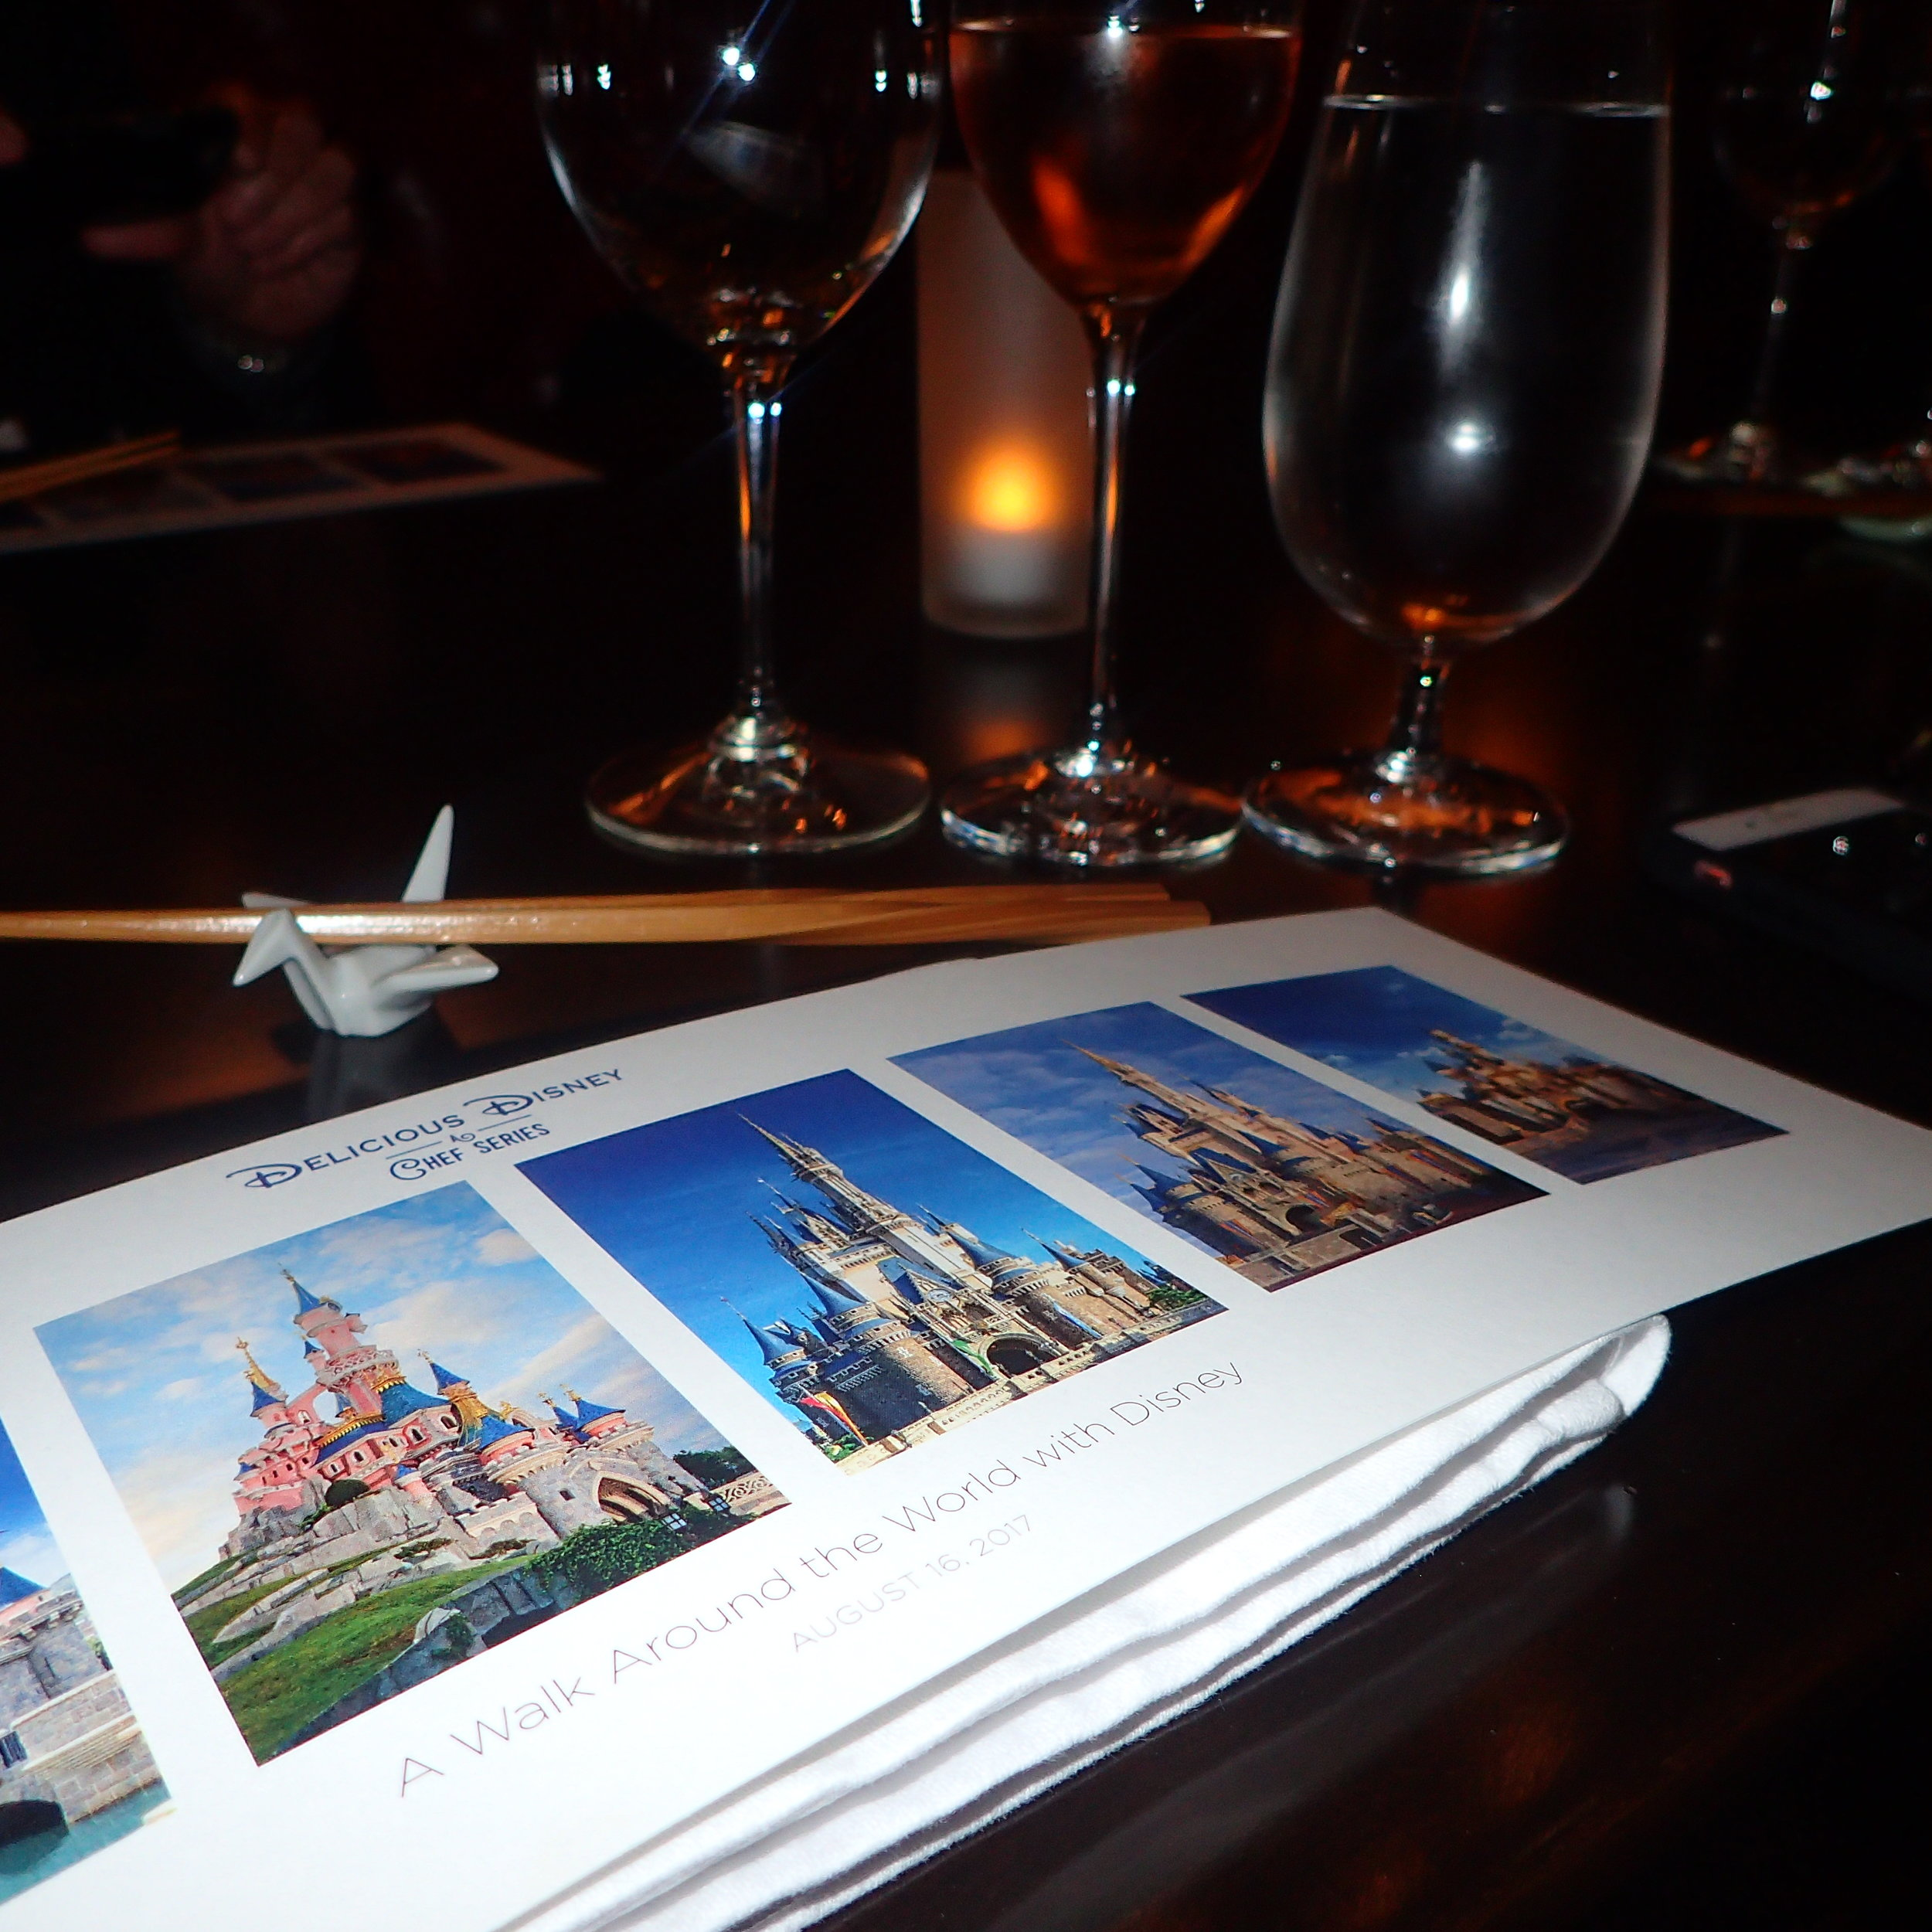 The menu with castles l-r of Shanghai, Hong Kong, Paris, Tokyo, Disney World and California